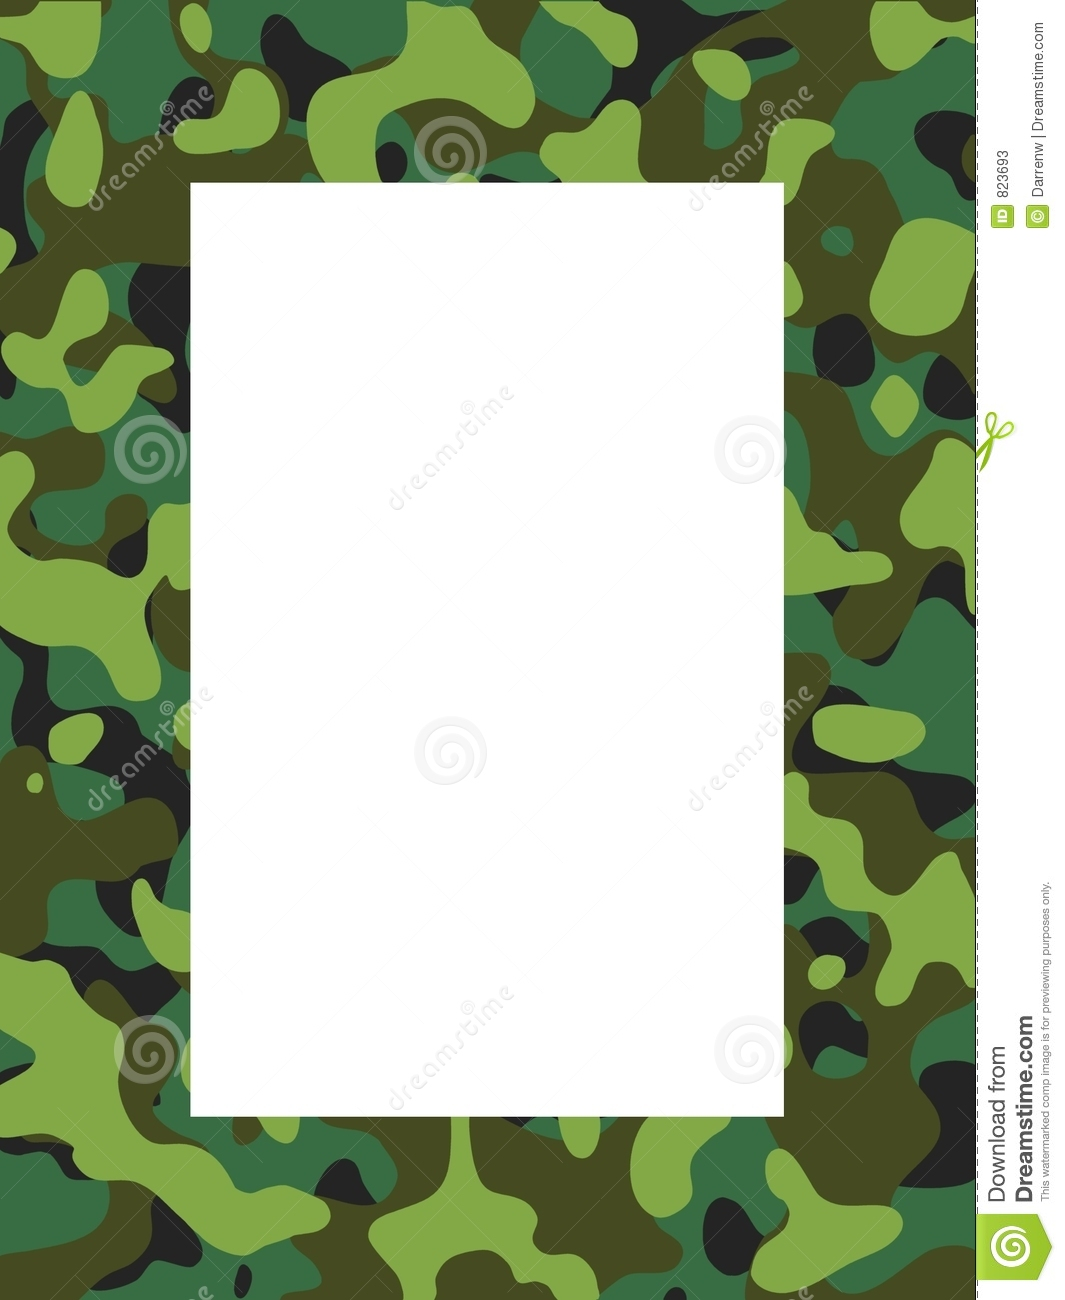 Illustrated camouflage frame,hand drawn, using no filters or plug-ins.